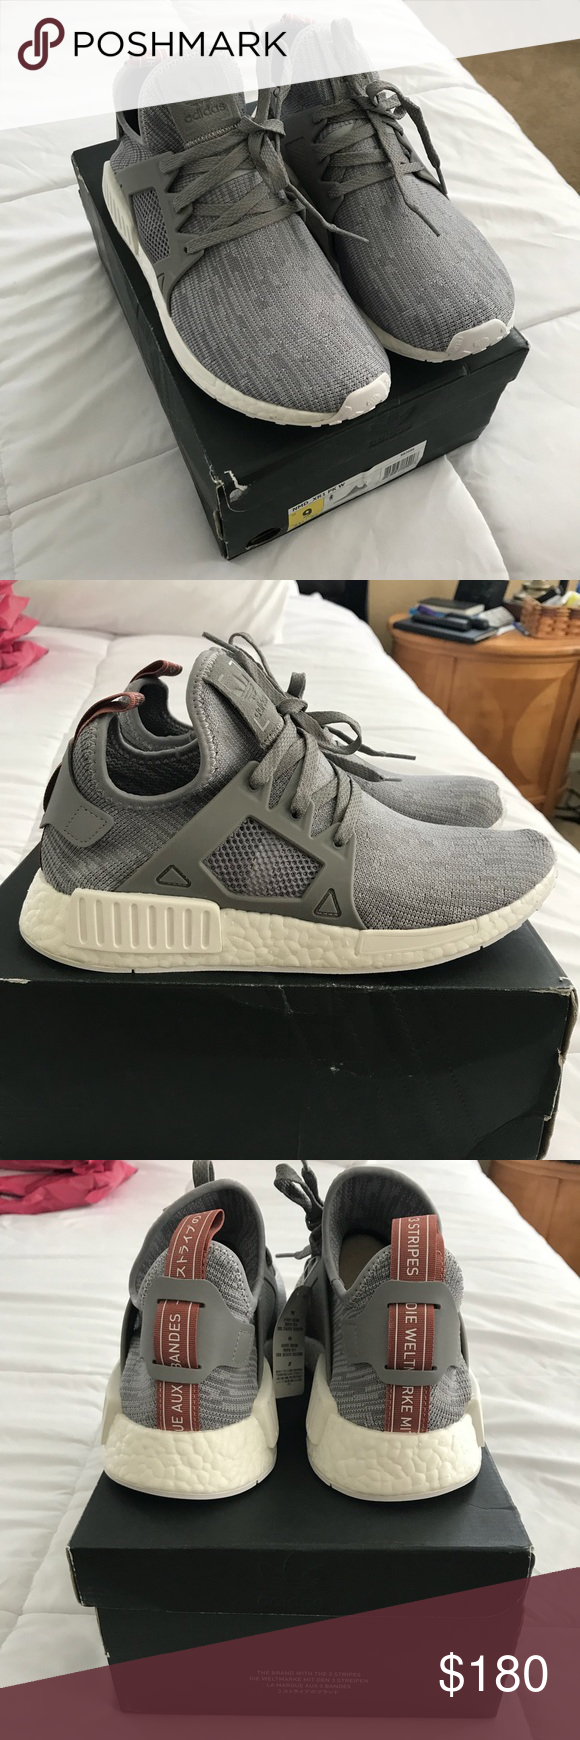 adidas donne rt rt nmd adidas nmd nel colore chiaro onix